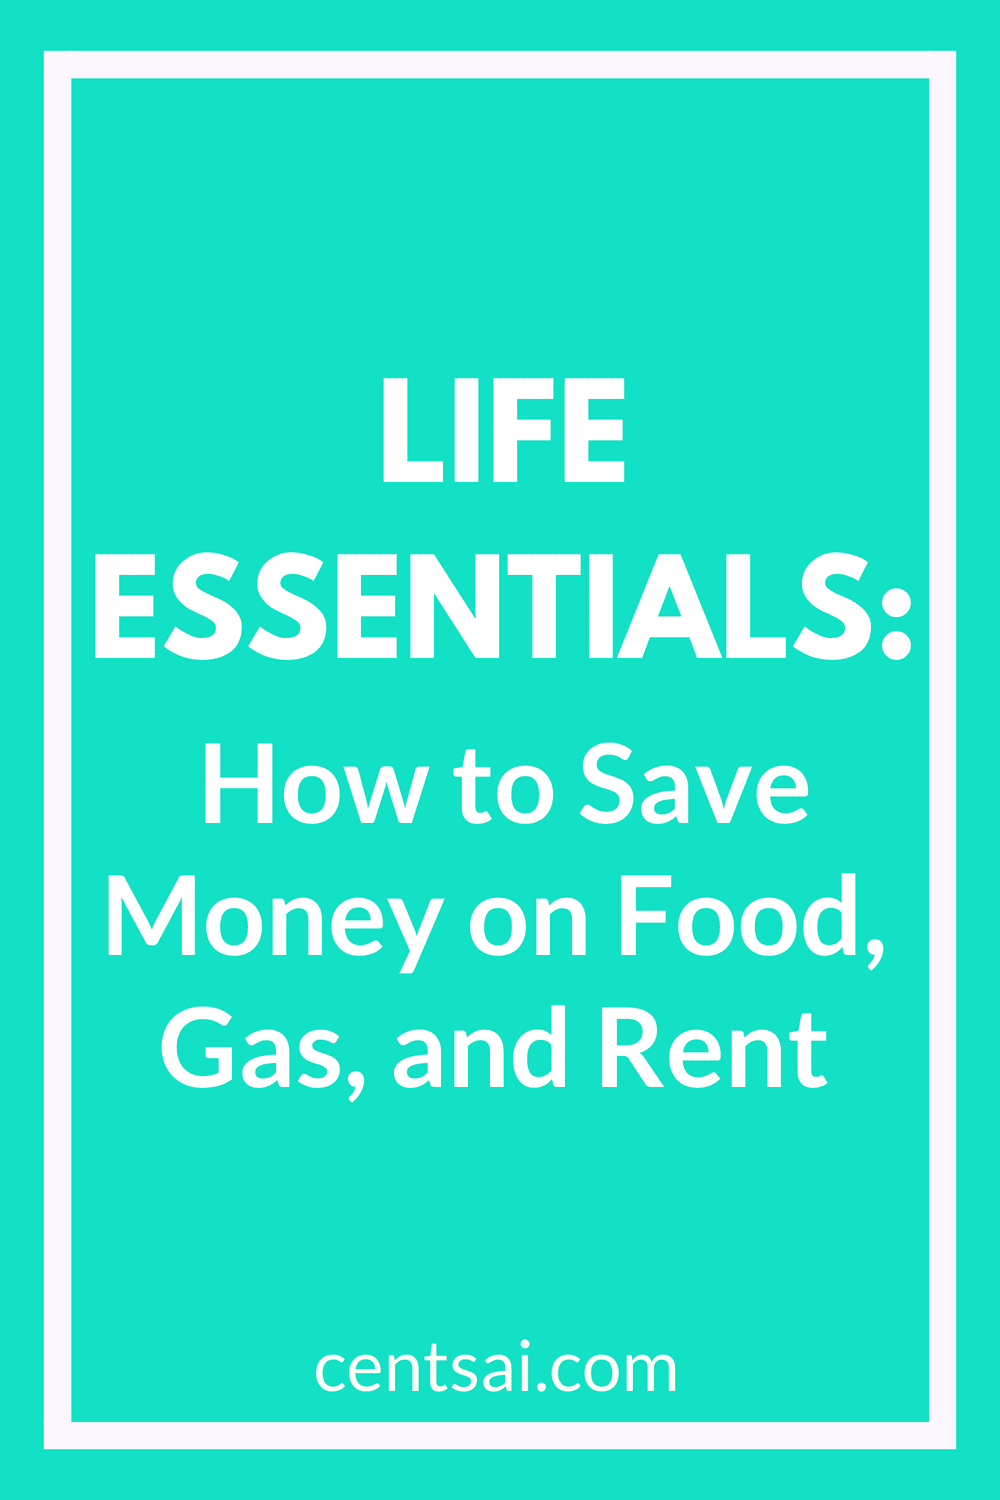 Life Essentials: How to Save Money on Food, Gas, and Rent. Even when it comes to the bare necessities, you may be spending more than you need to. Here's how to save money on food, gas, and rent. #costofliving #frugality #frugal #savemoney #savingtips